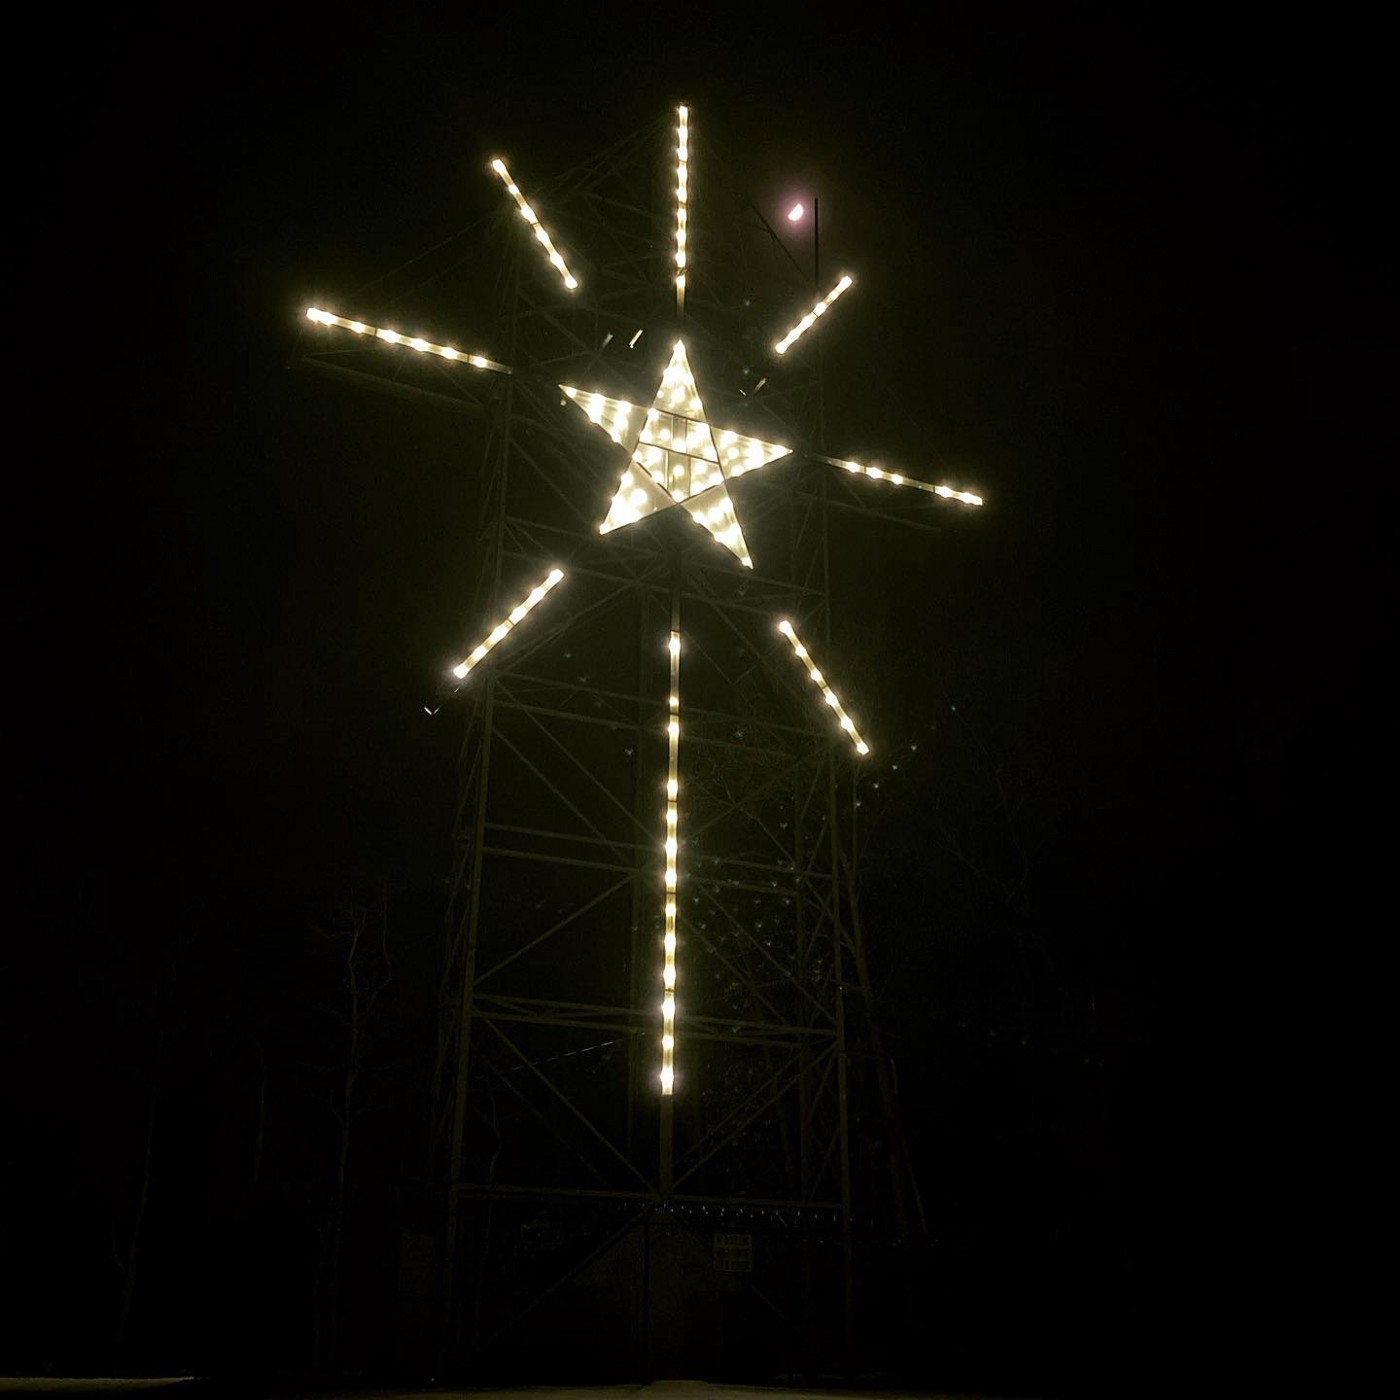 The Star of Bethlehem, Pennsylvania, US on the night of The Great Conjunction, December 21, 2020.